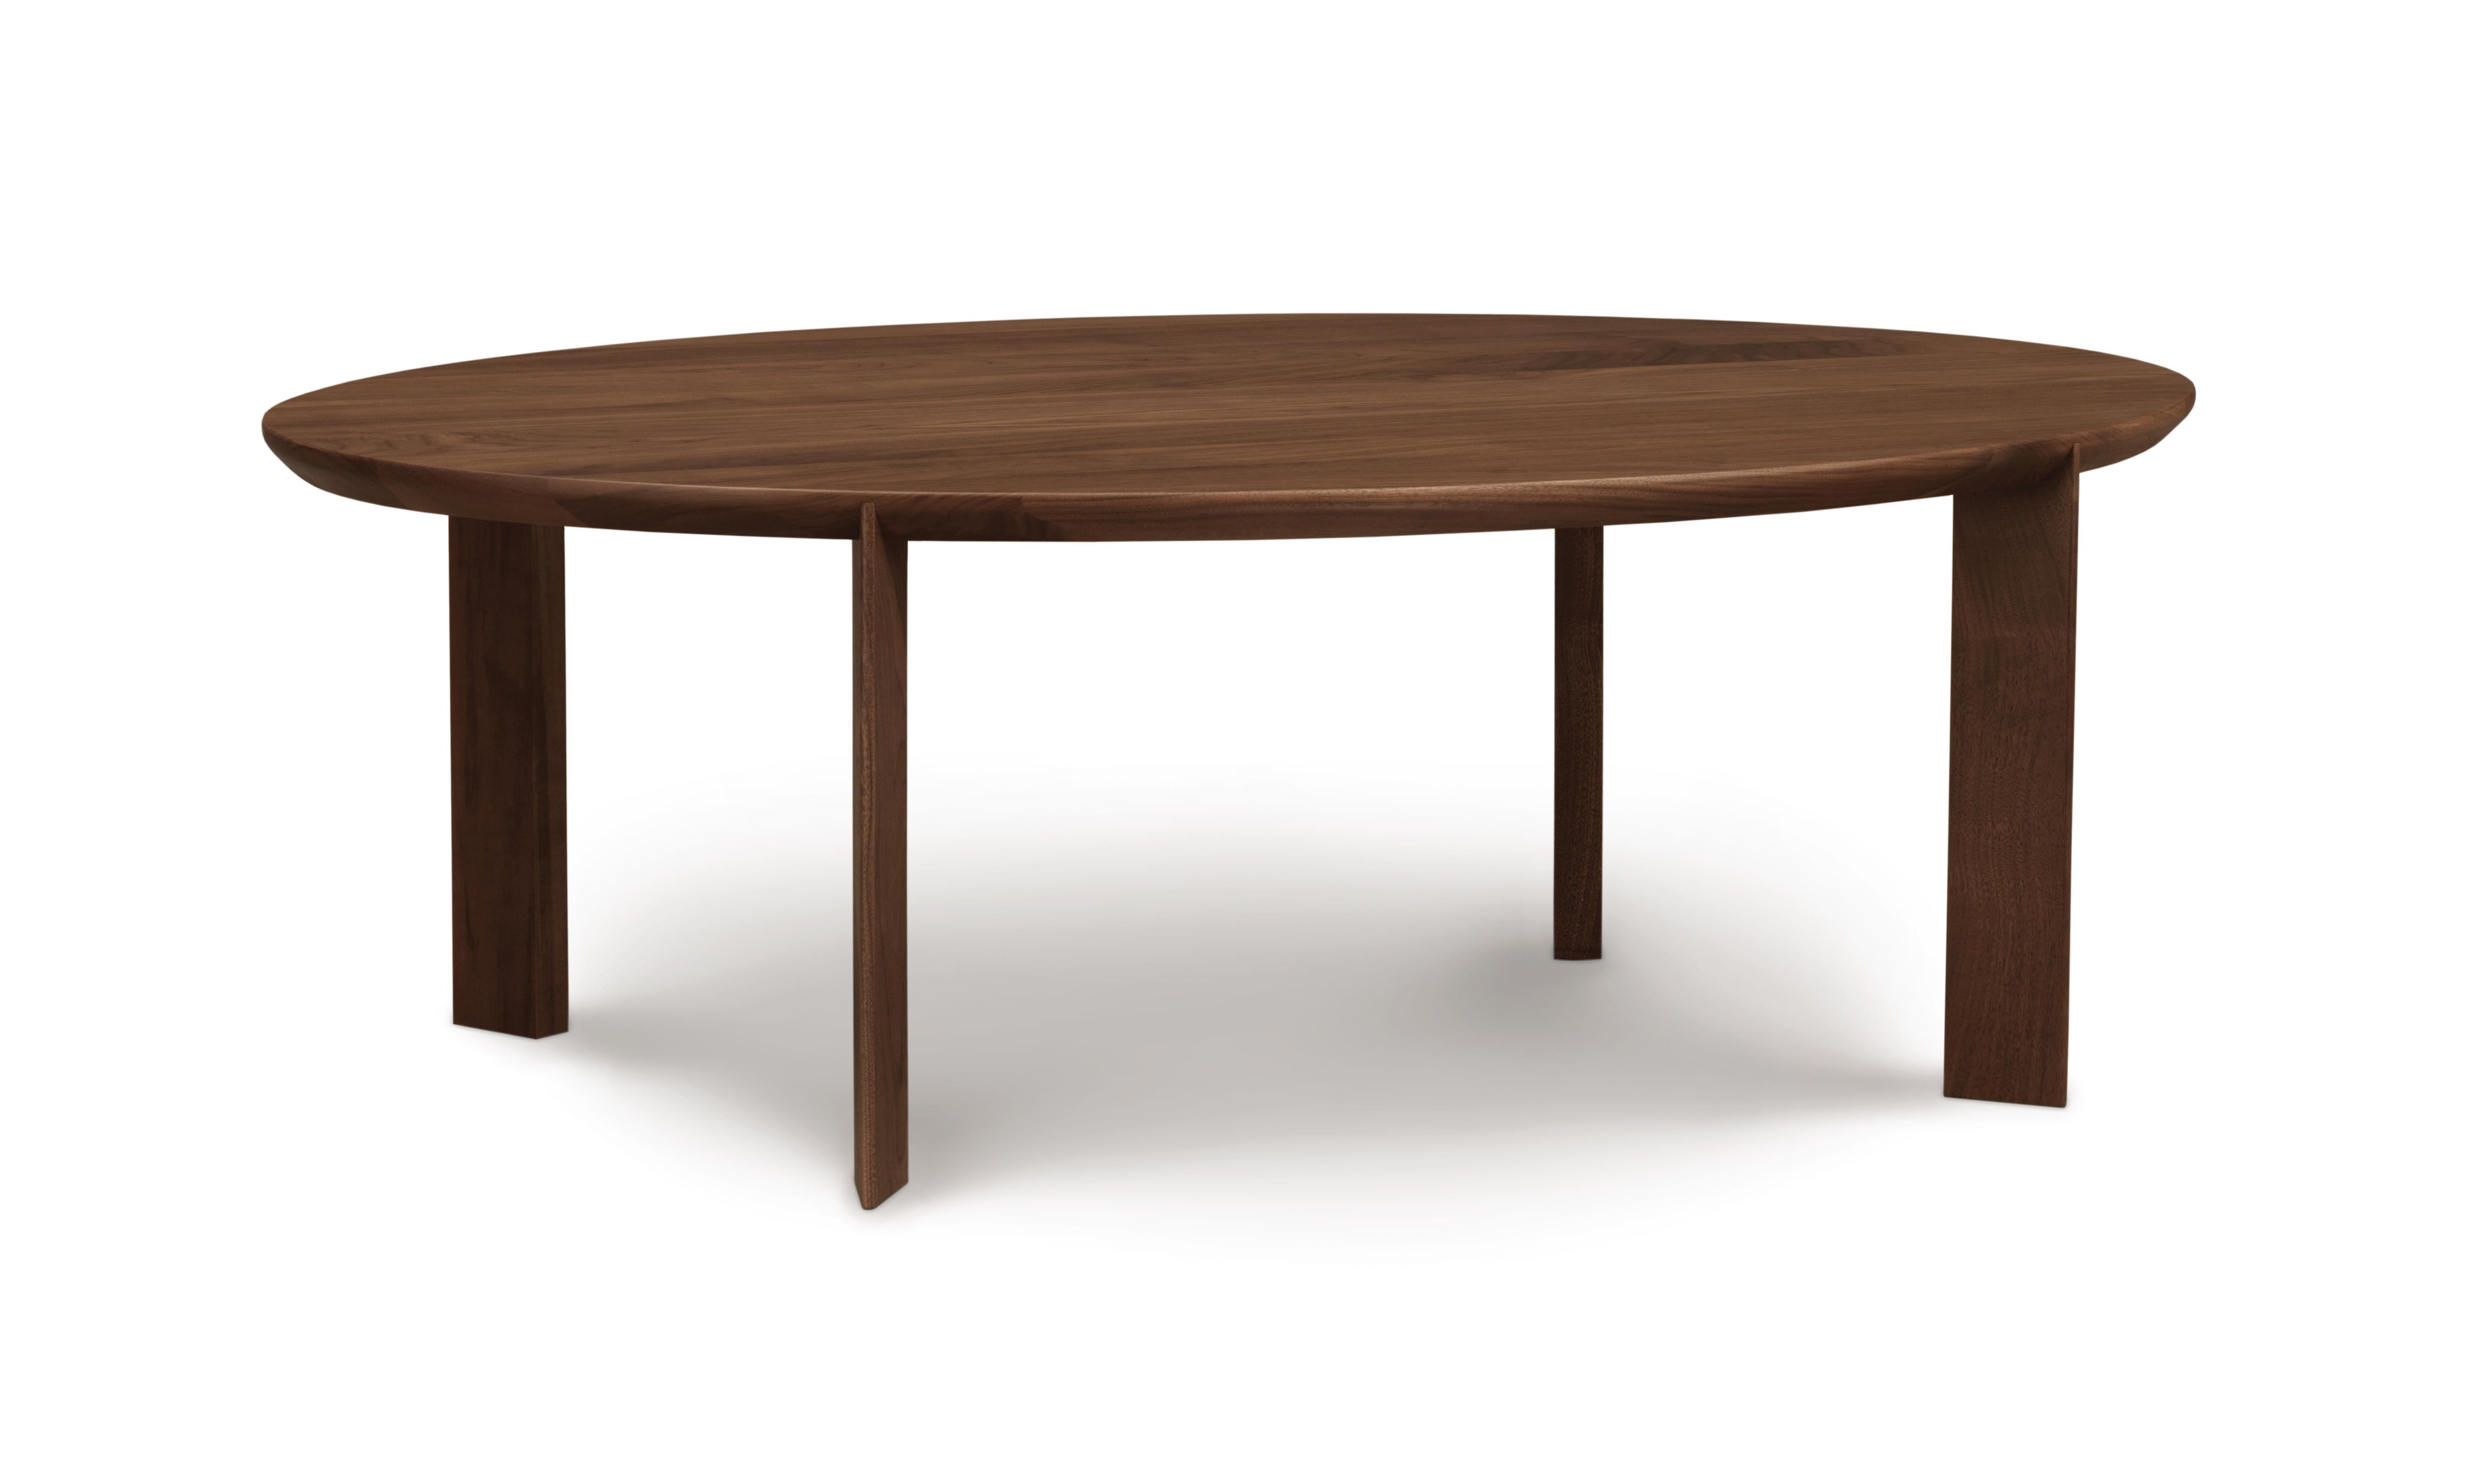 Copeland Furniture Oval Coffee Table 5 Han 36 04 Coffee Table Oval Coffee Tables Copeland Furniture